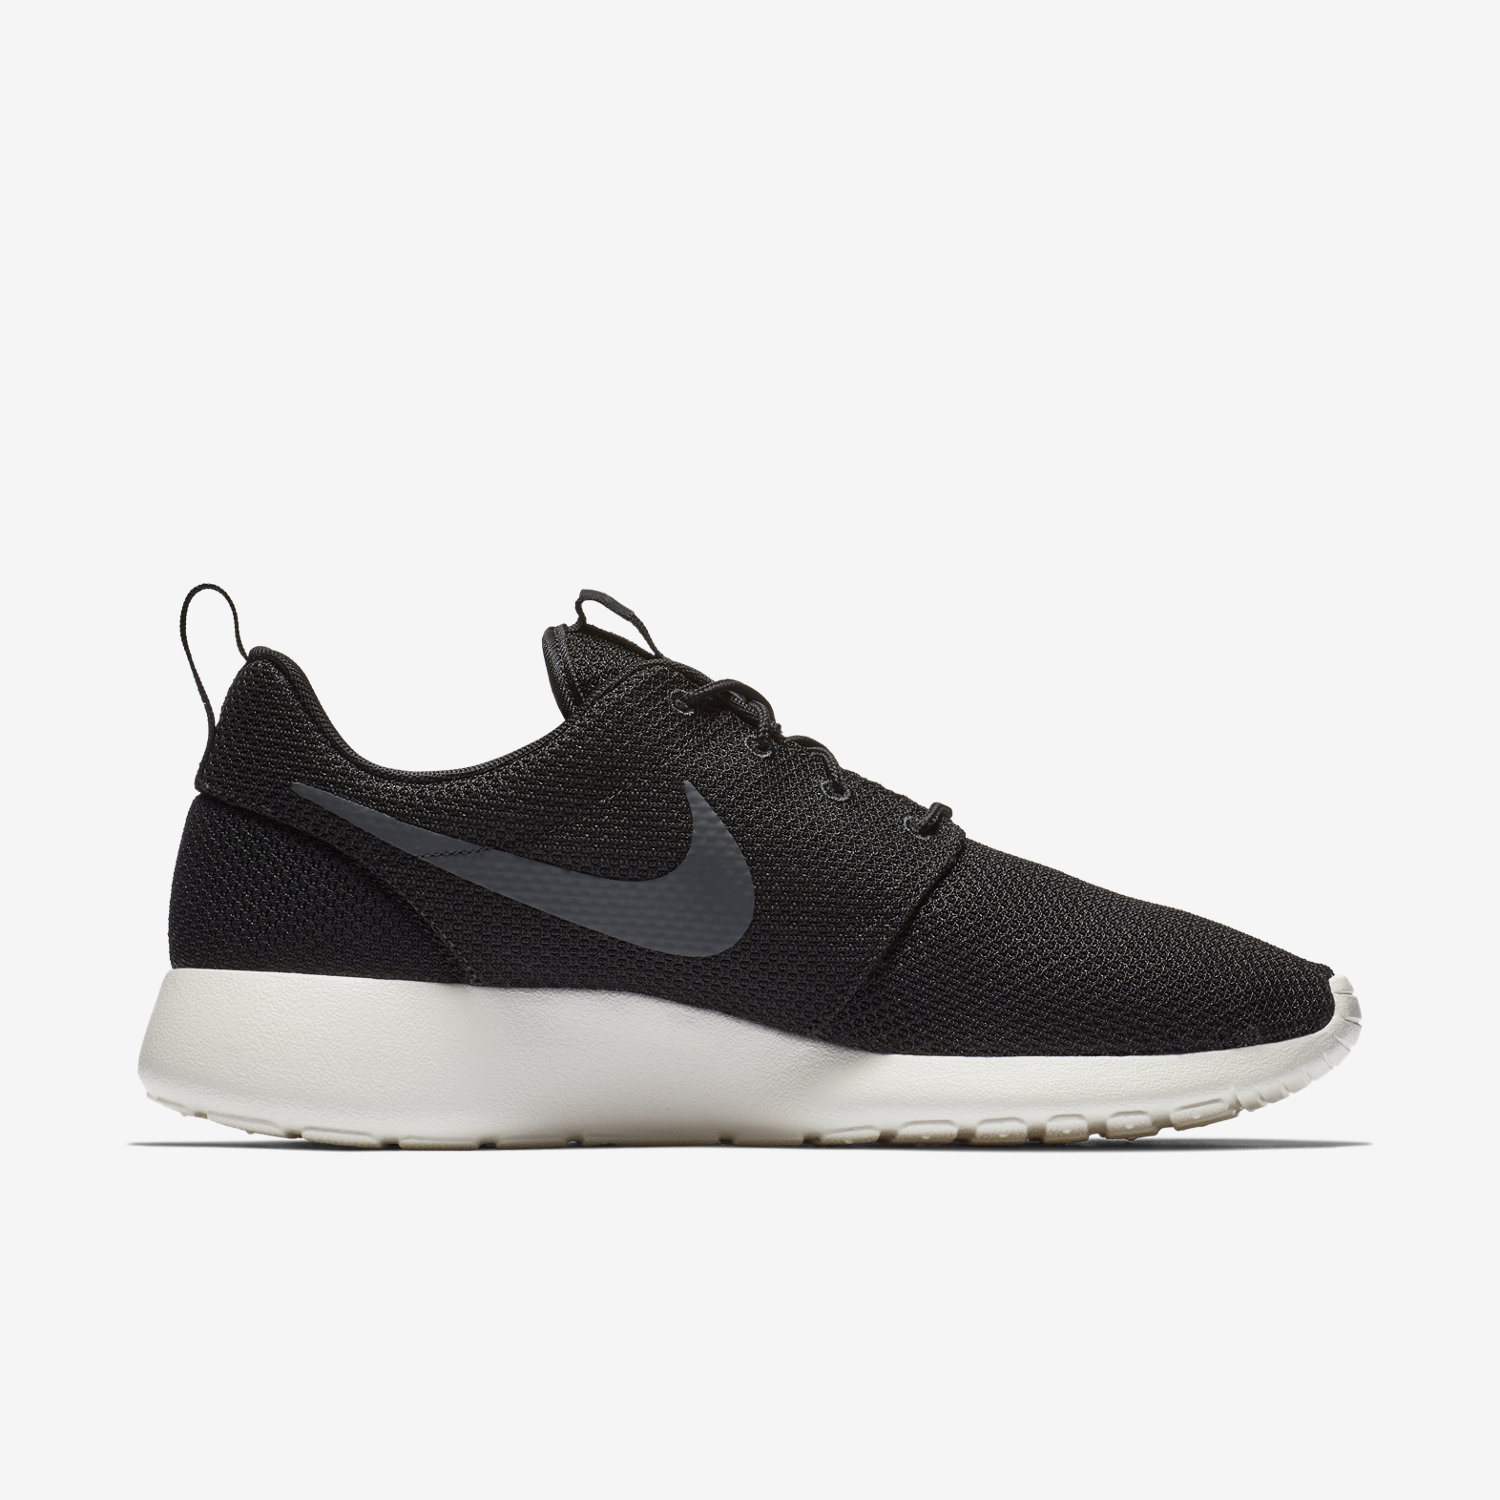 mens nike roshe run high black grey